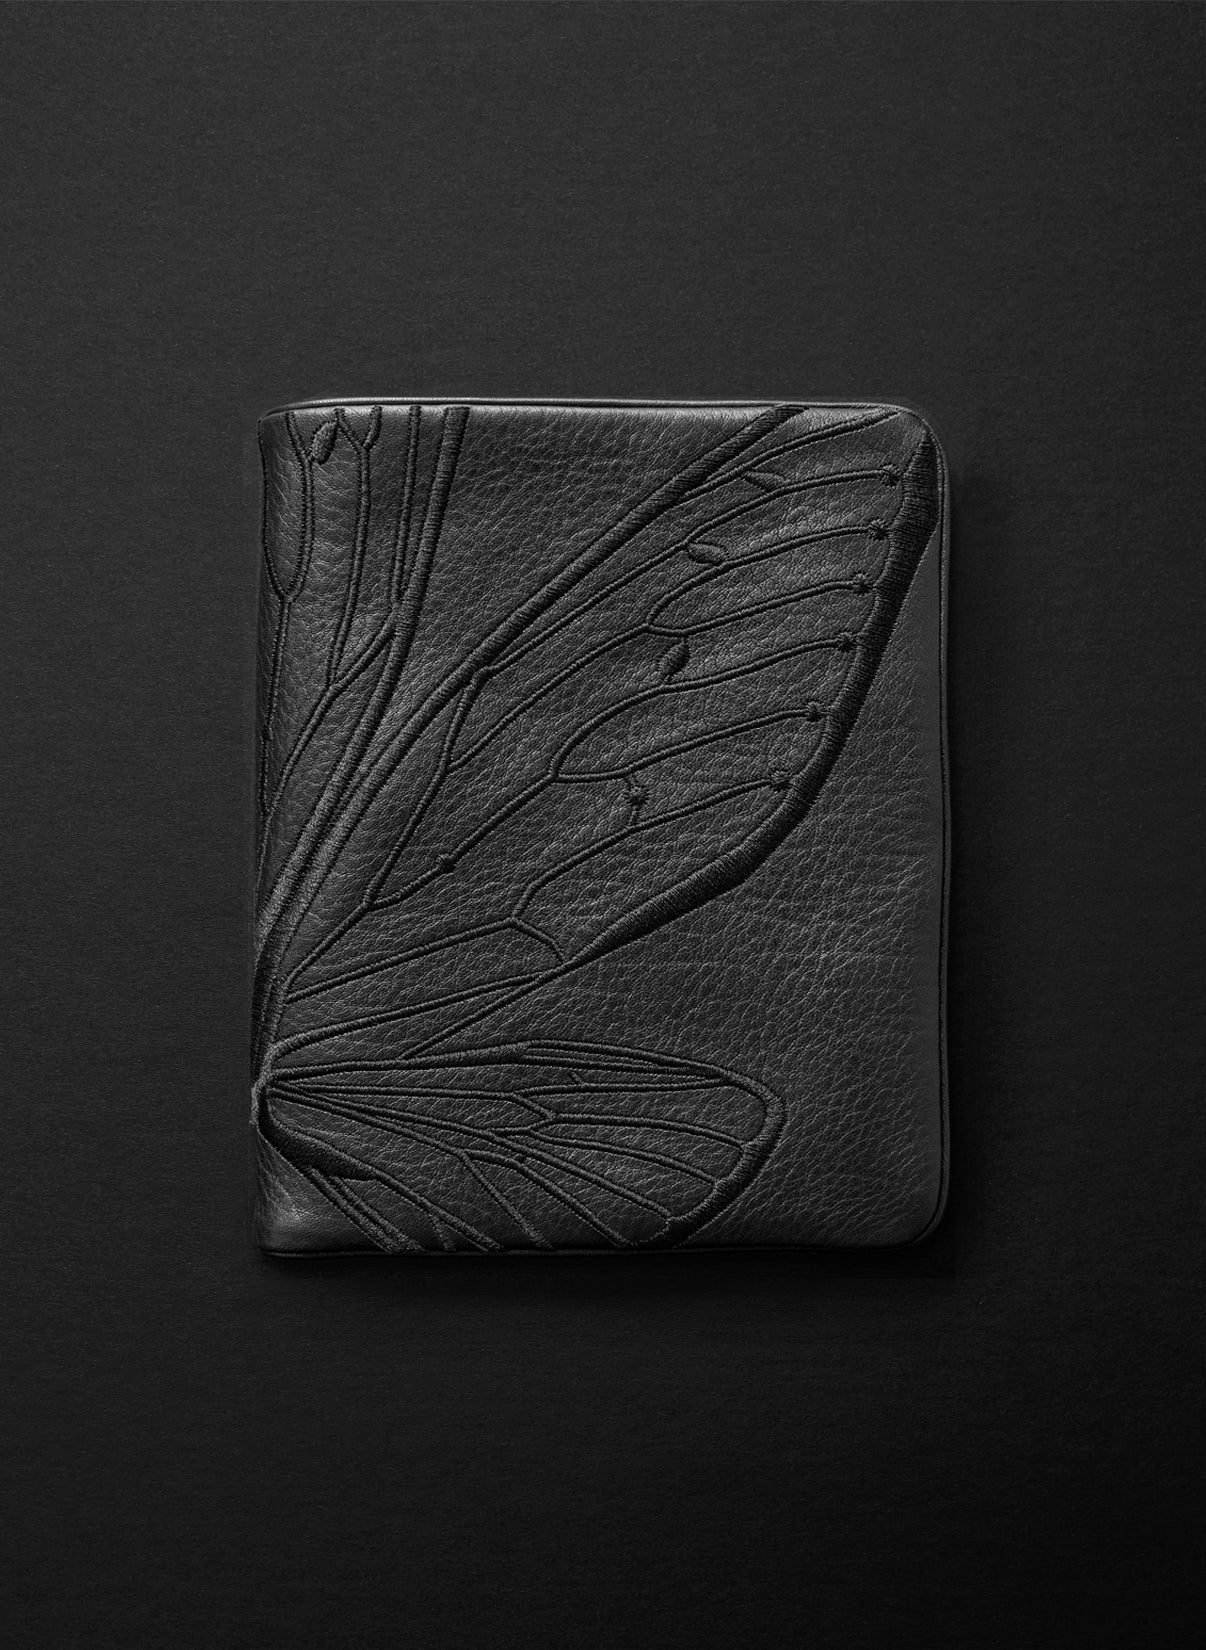 Papillon Squire Wallet - Licorice/Carmen